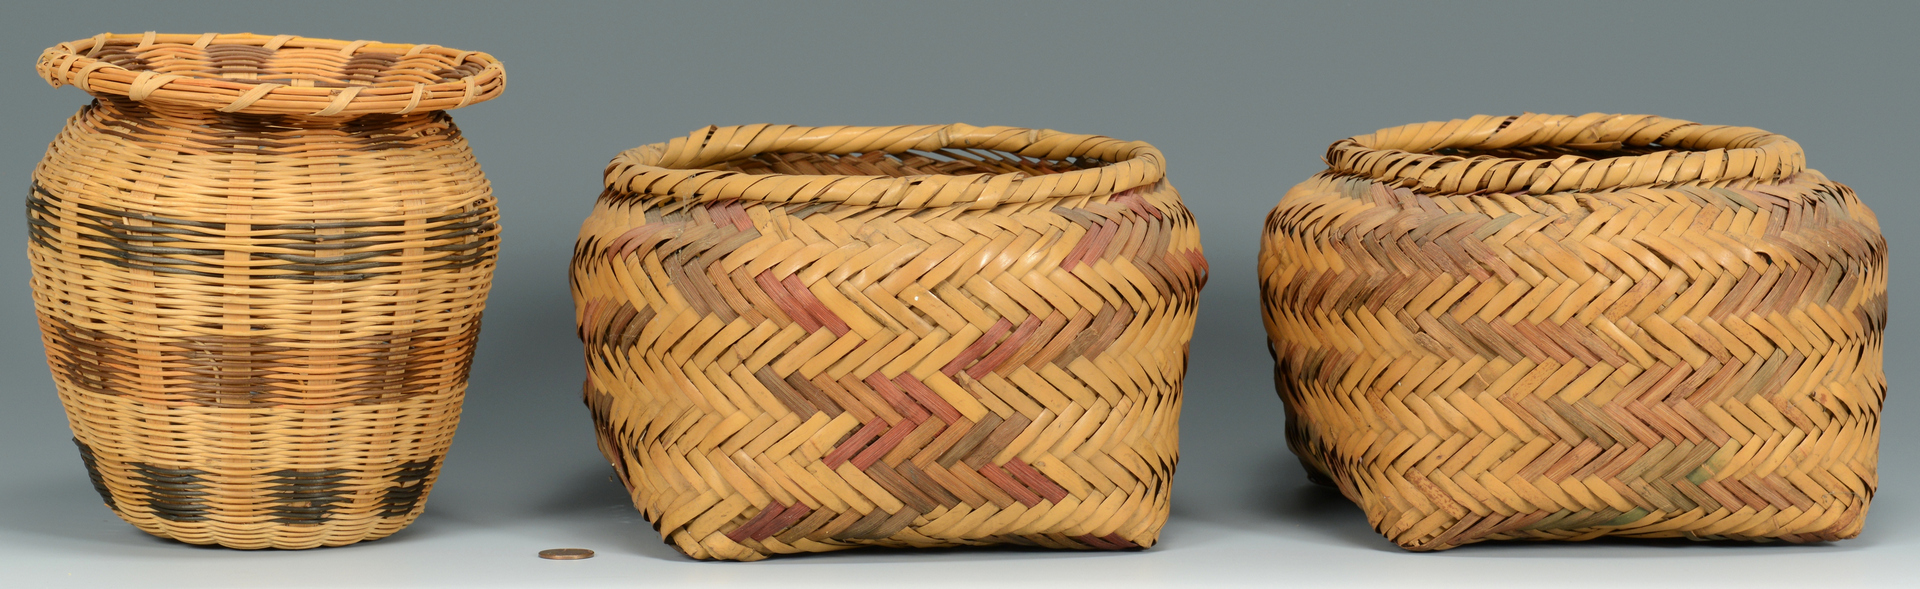 Lot 3088331: 2 Choctaw Rivercane Baskets & 1 Cherokee